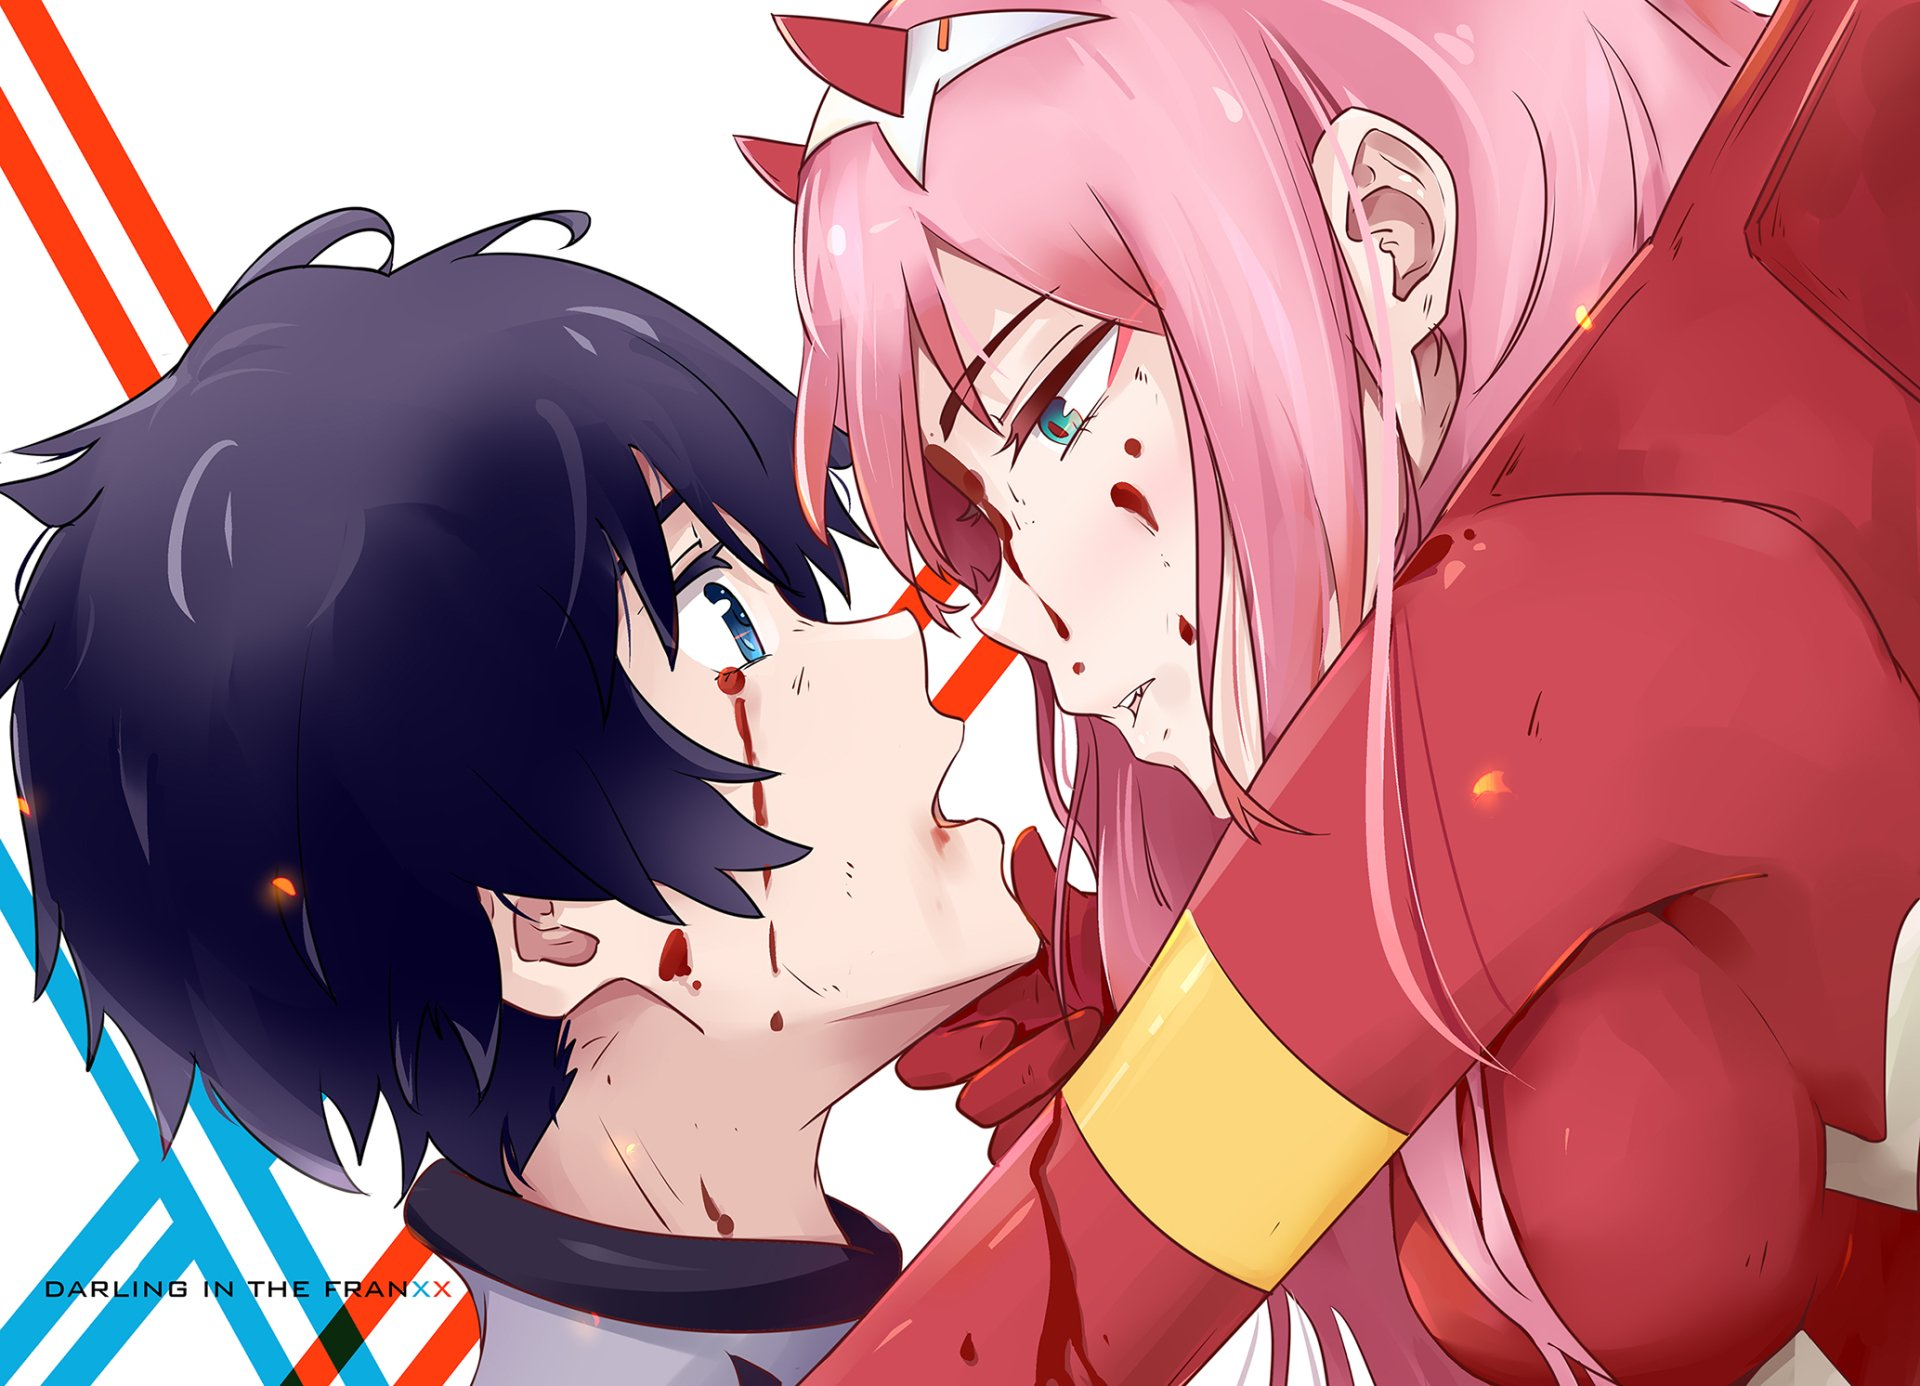 动漫 - Darling in the FranXX  Hiro (Darling in the FranXX) Zero Two (Darling in the FranXX) 壁纸